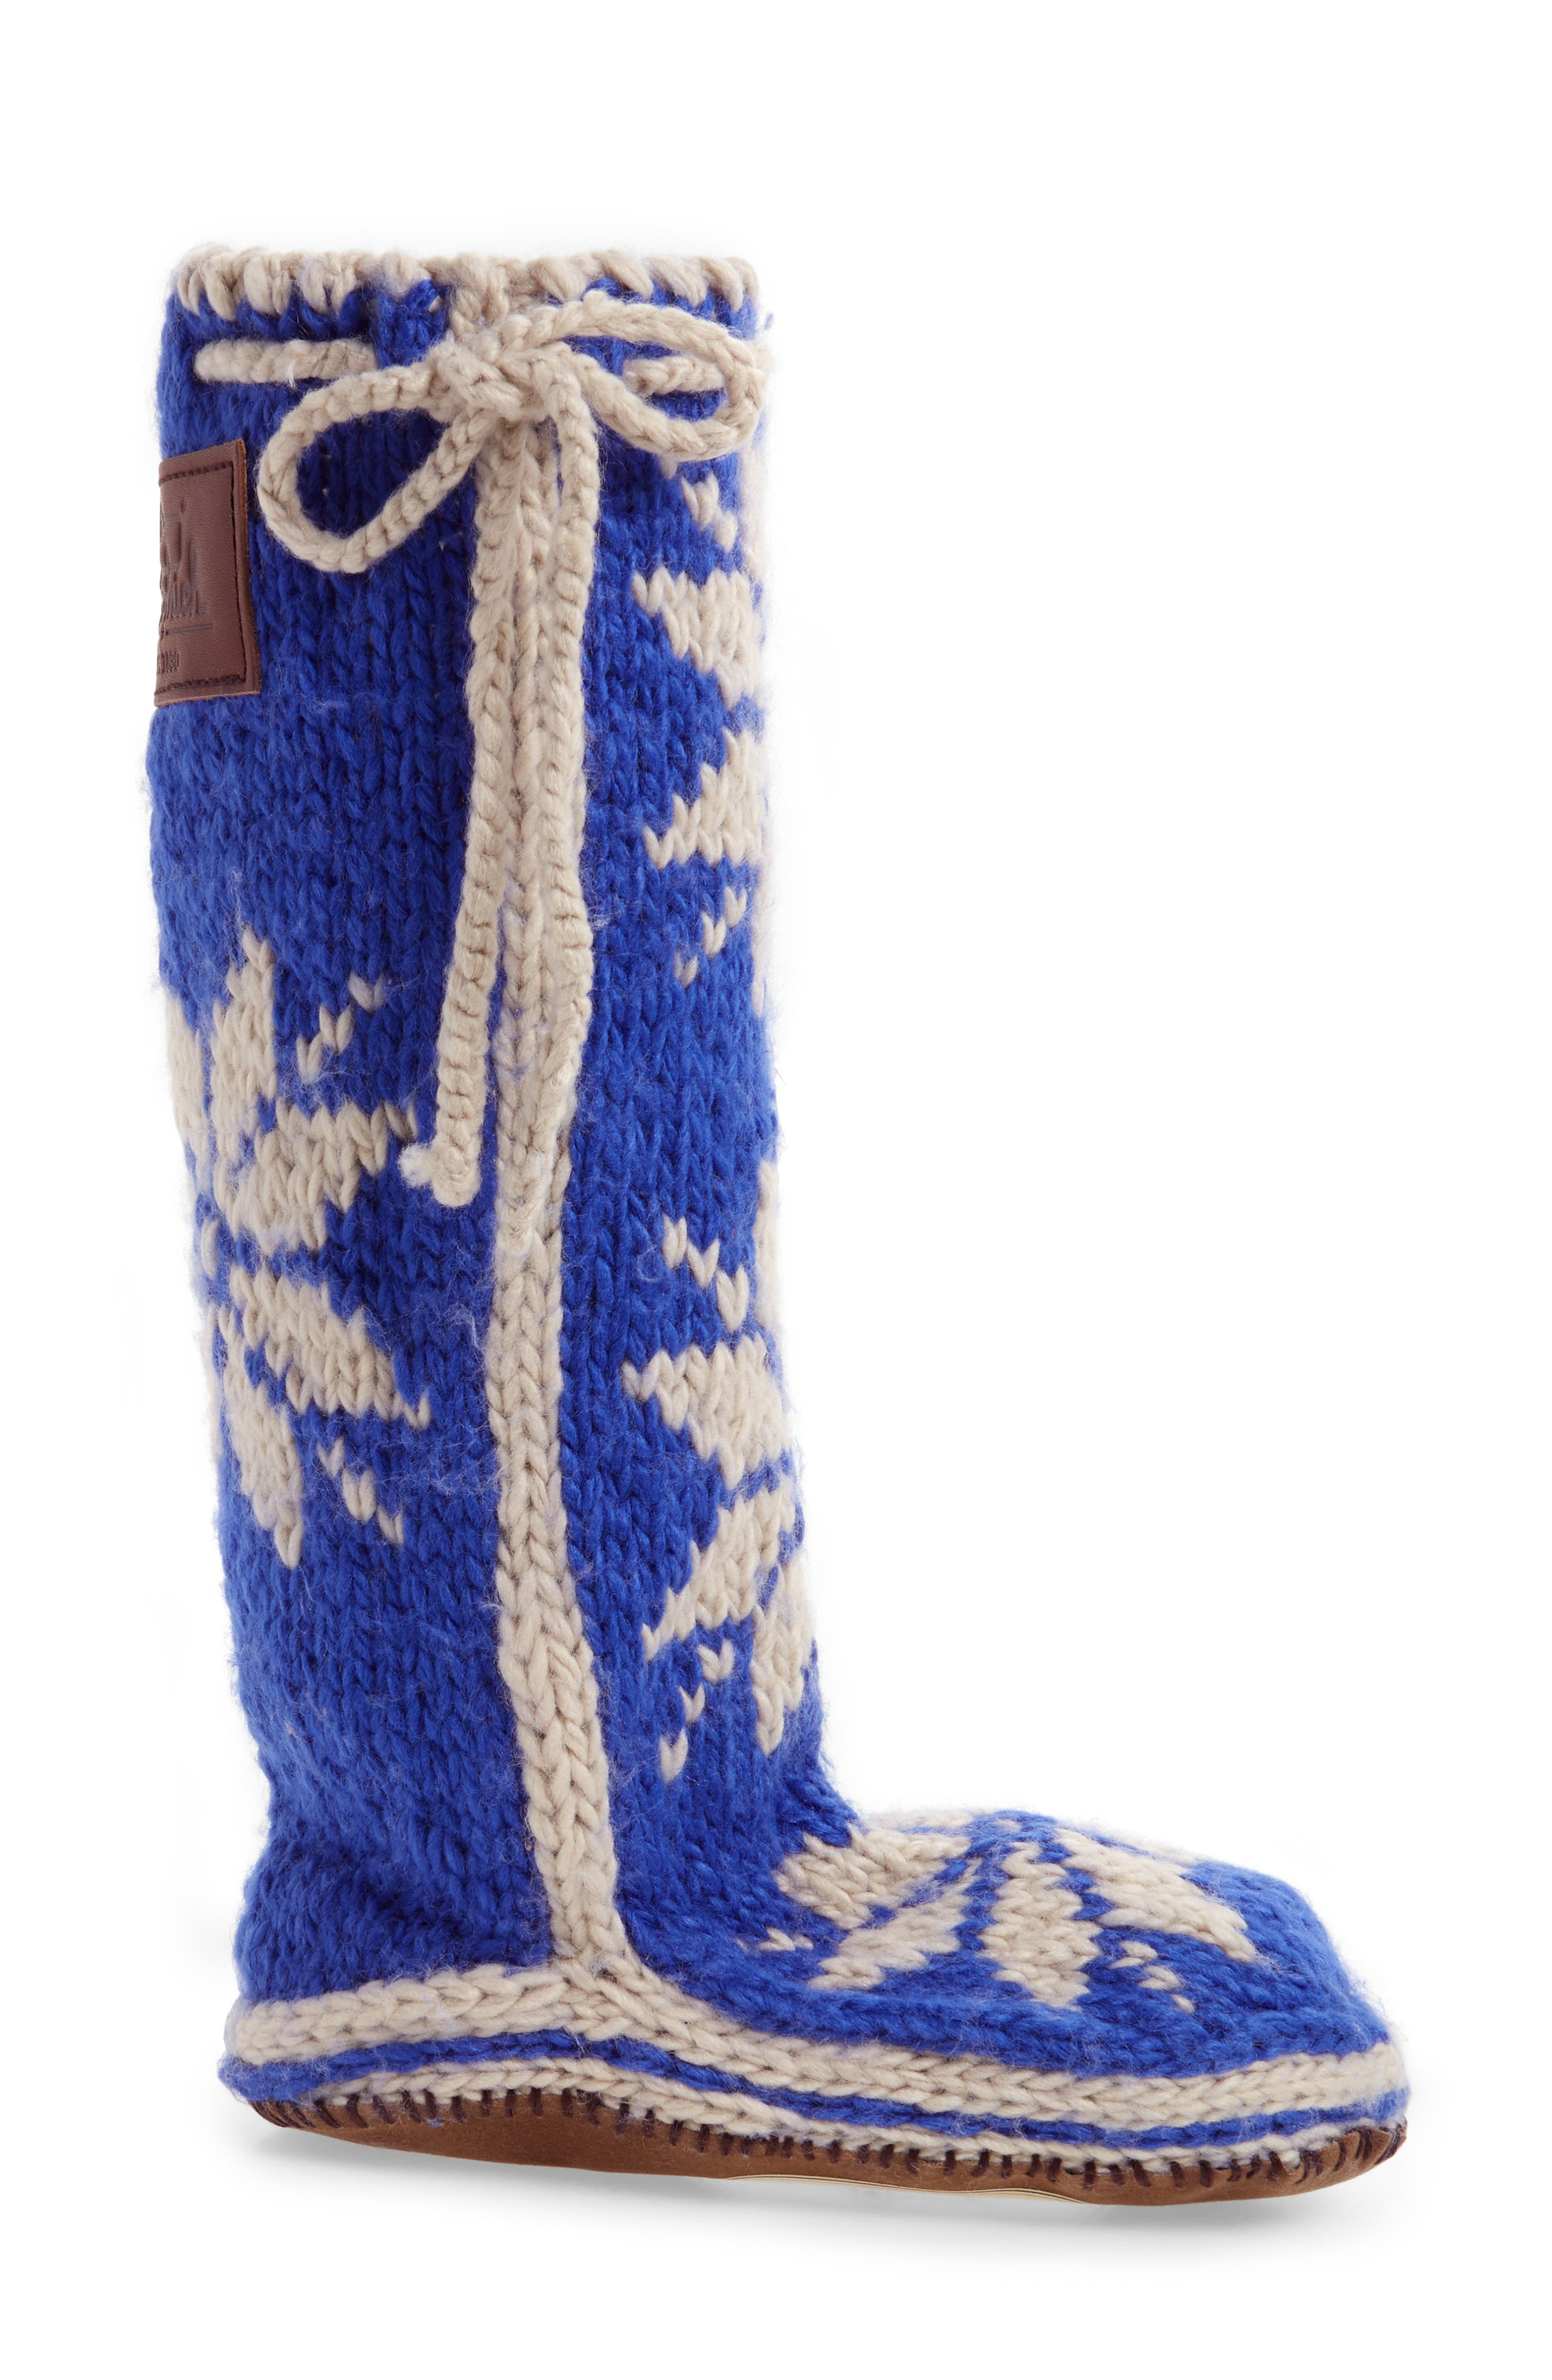 'Chalet' Socks,                             Alternate thumbnail 19, color,